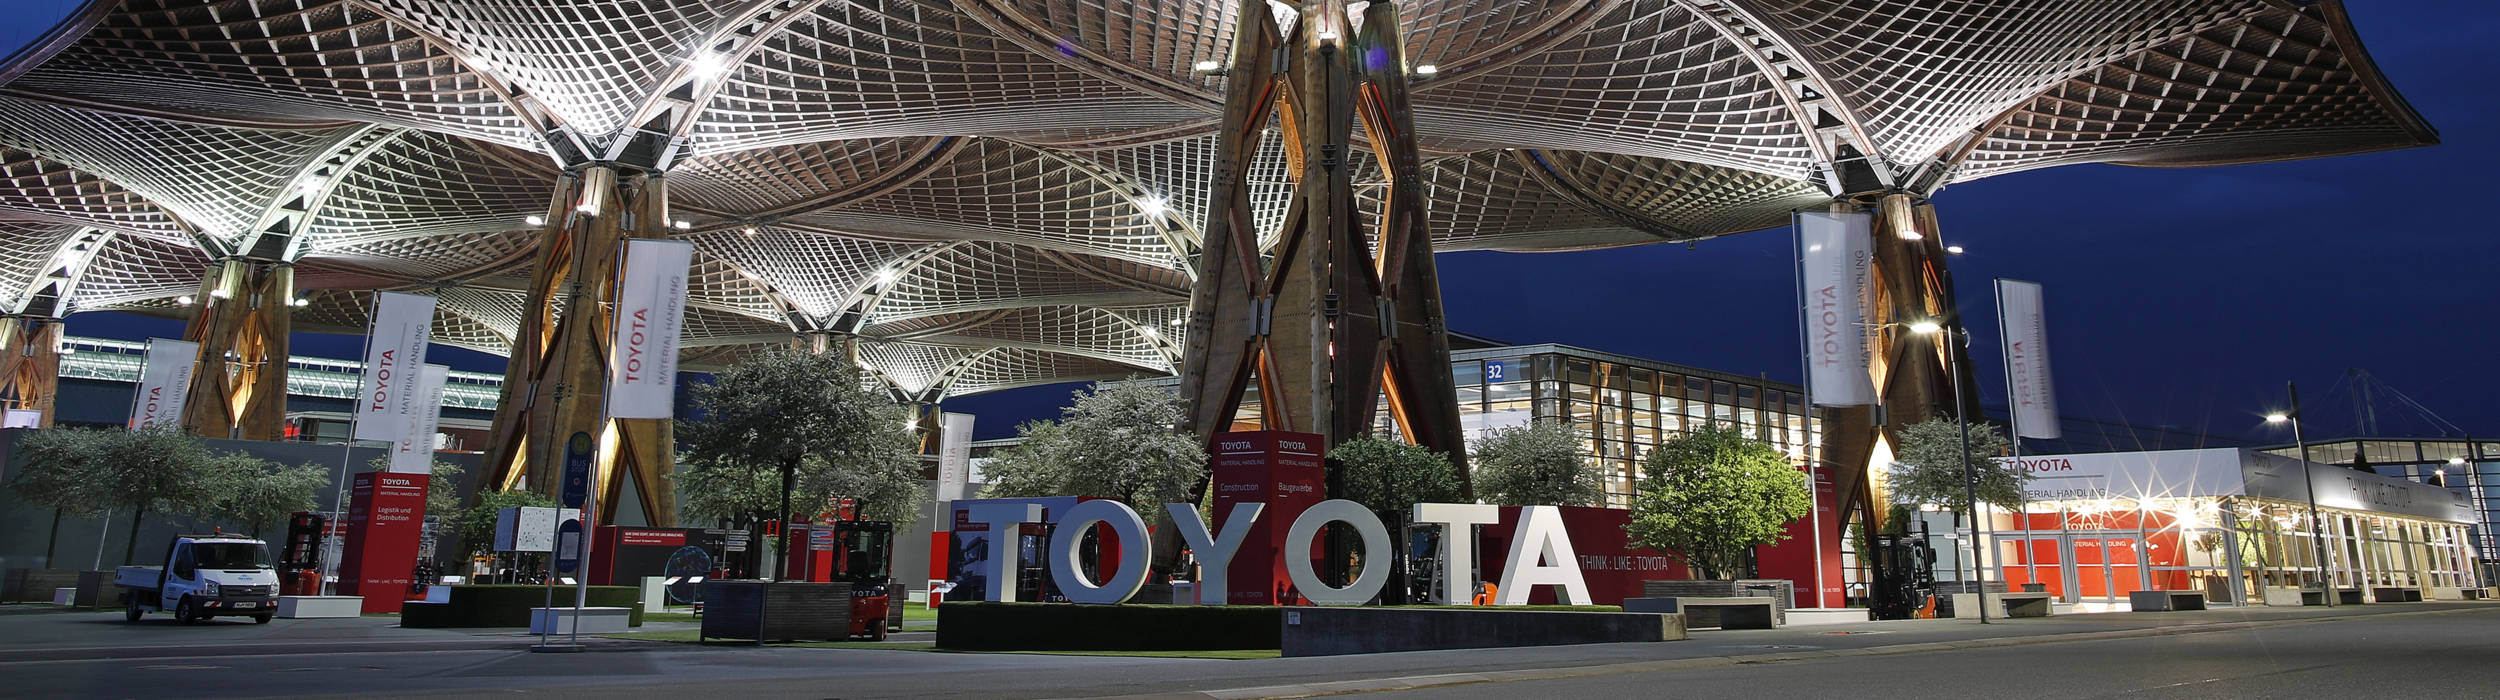 Toyota material handling at CeMAT 2018